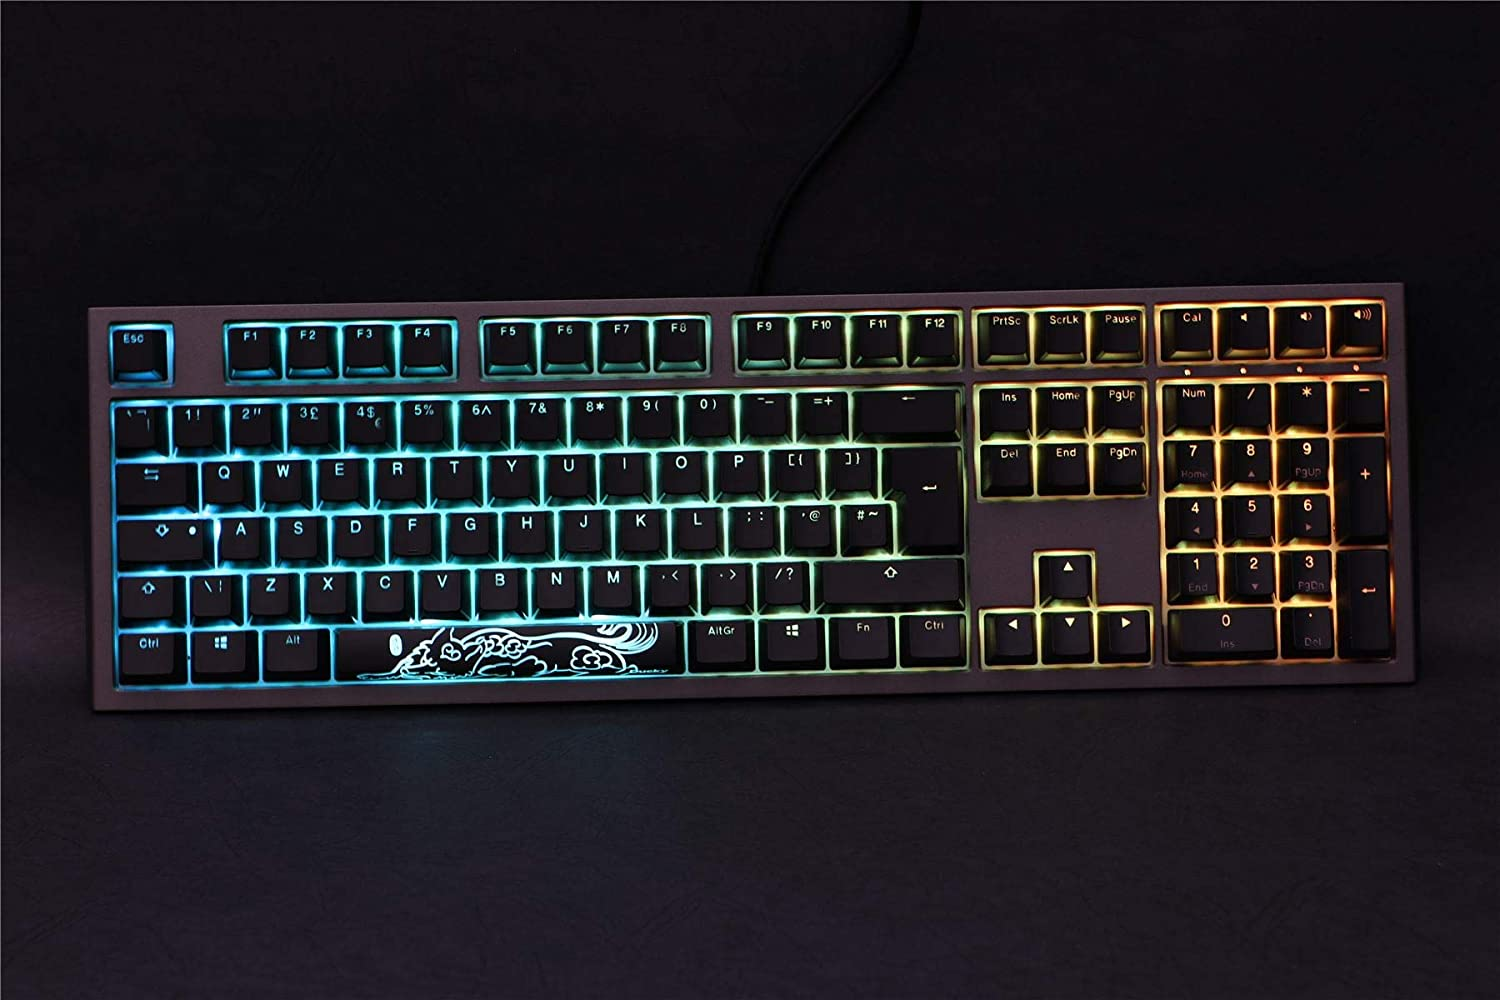 DUCKY CHANNEL SHINE7 CHERRY RGB SPEED SWITCH / BLACK CASE /RGB DKSH1808ST-PUSPDAAT1